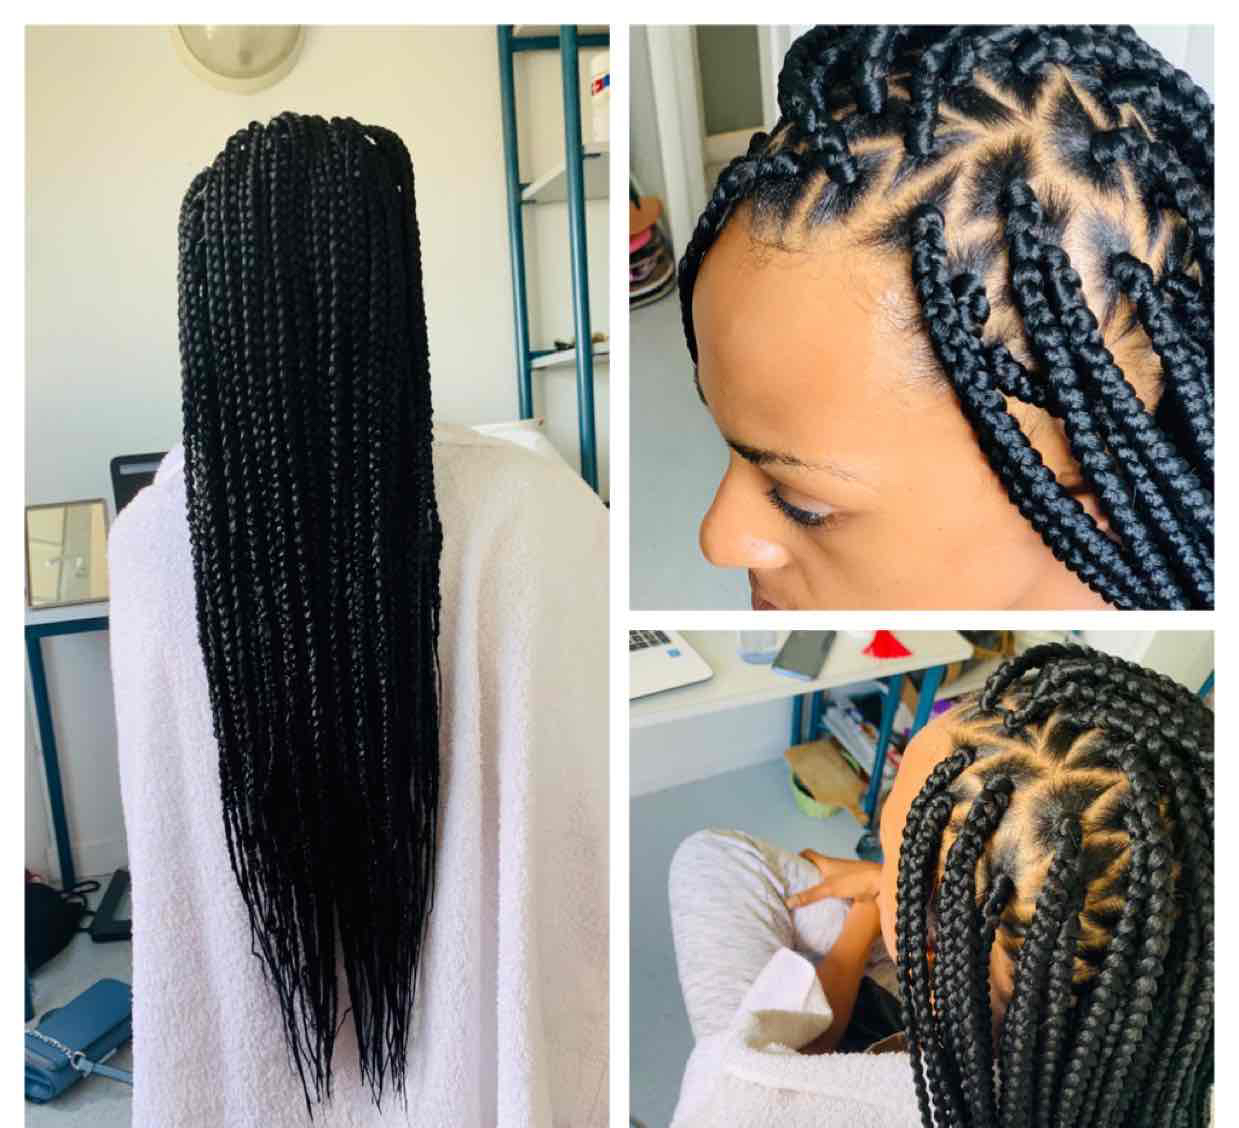 salon de coiffure afro tresse tresses box braids crochet braids vanilles tissages paris 75 77 78 91 92 93 94 95 UQQFFKNS